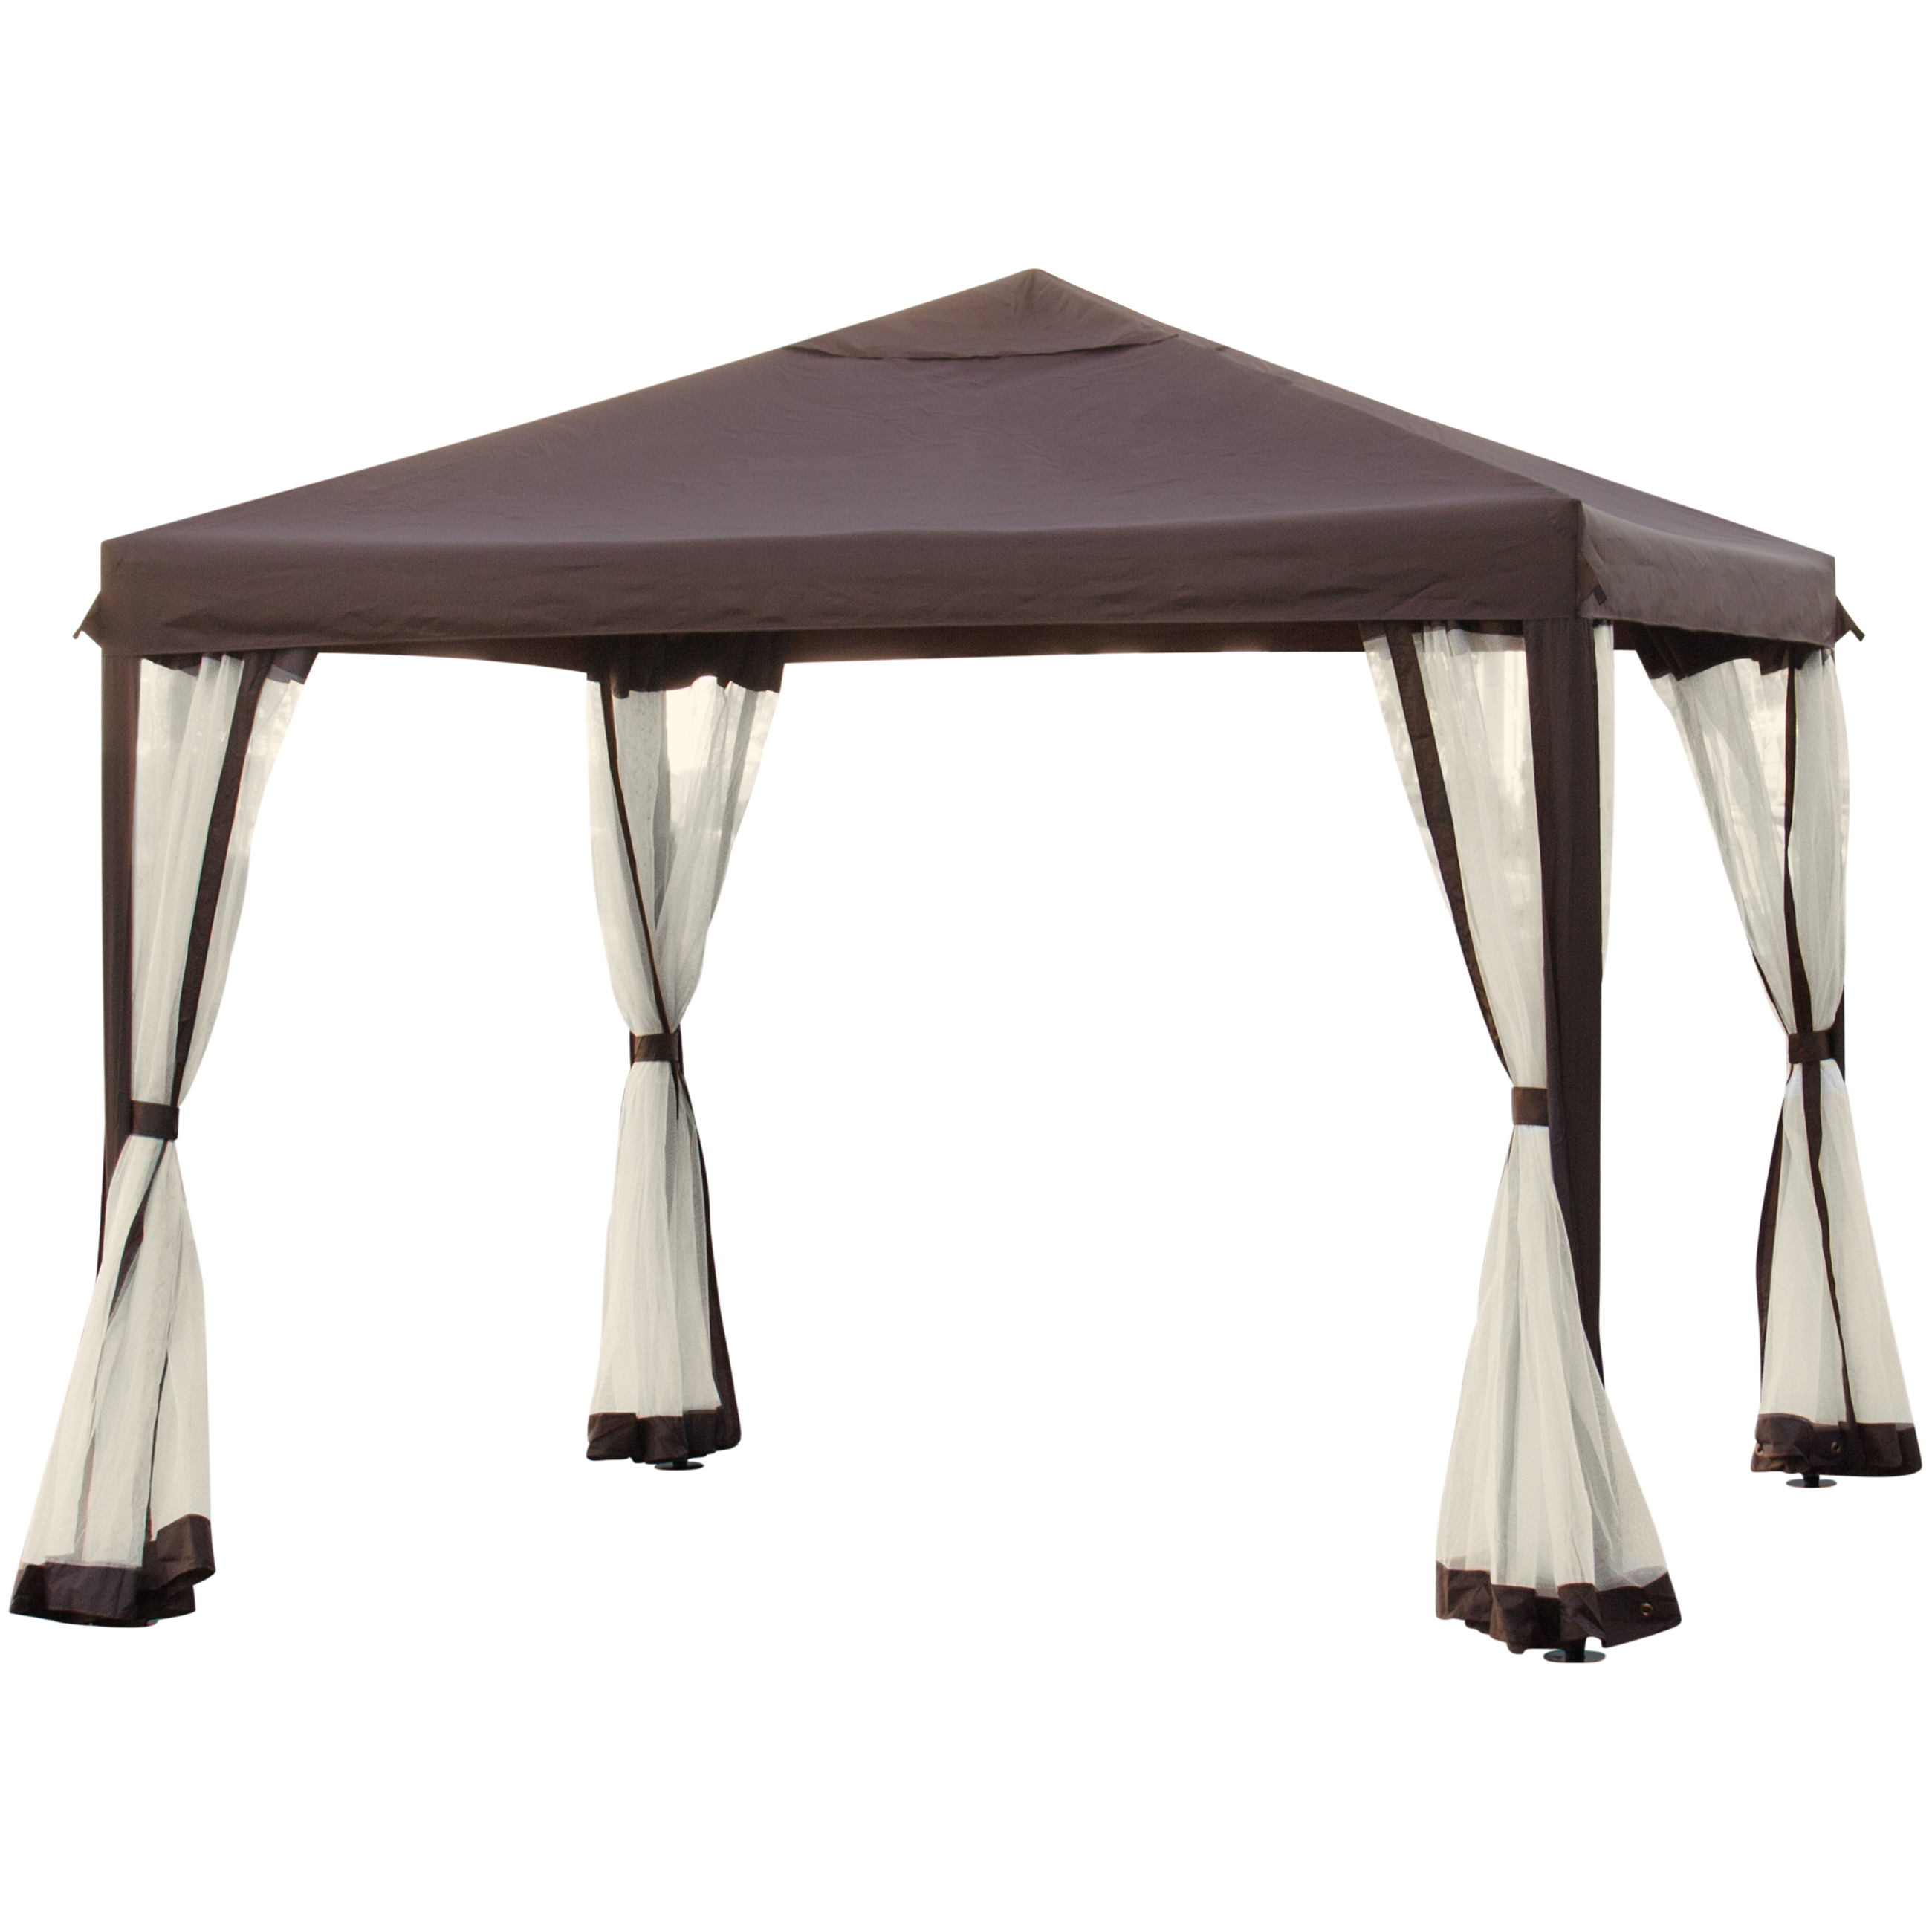 Best Choice Products 10x10ft Outdoor Garden Patio Canopy Gazebo w  Fully Enclosed Mesh... by Best Choice Products